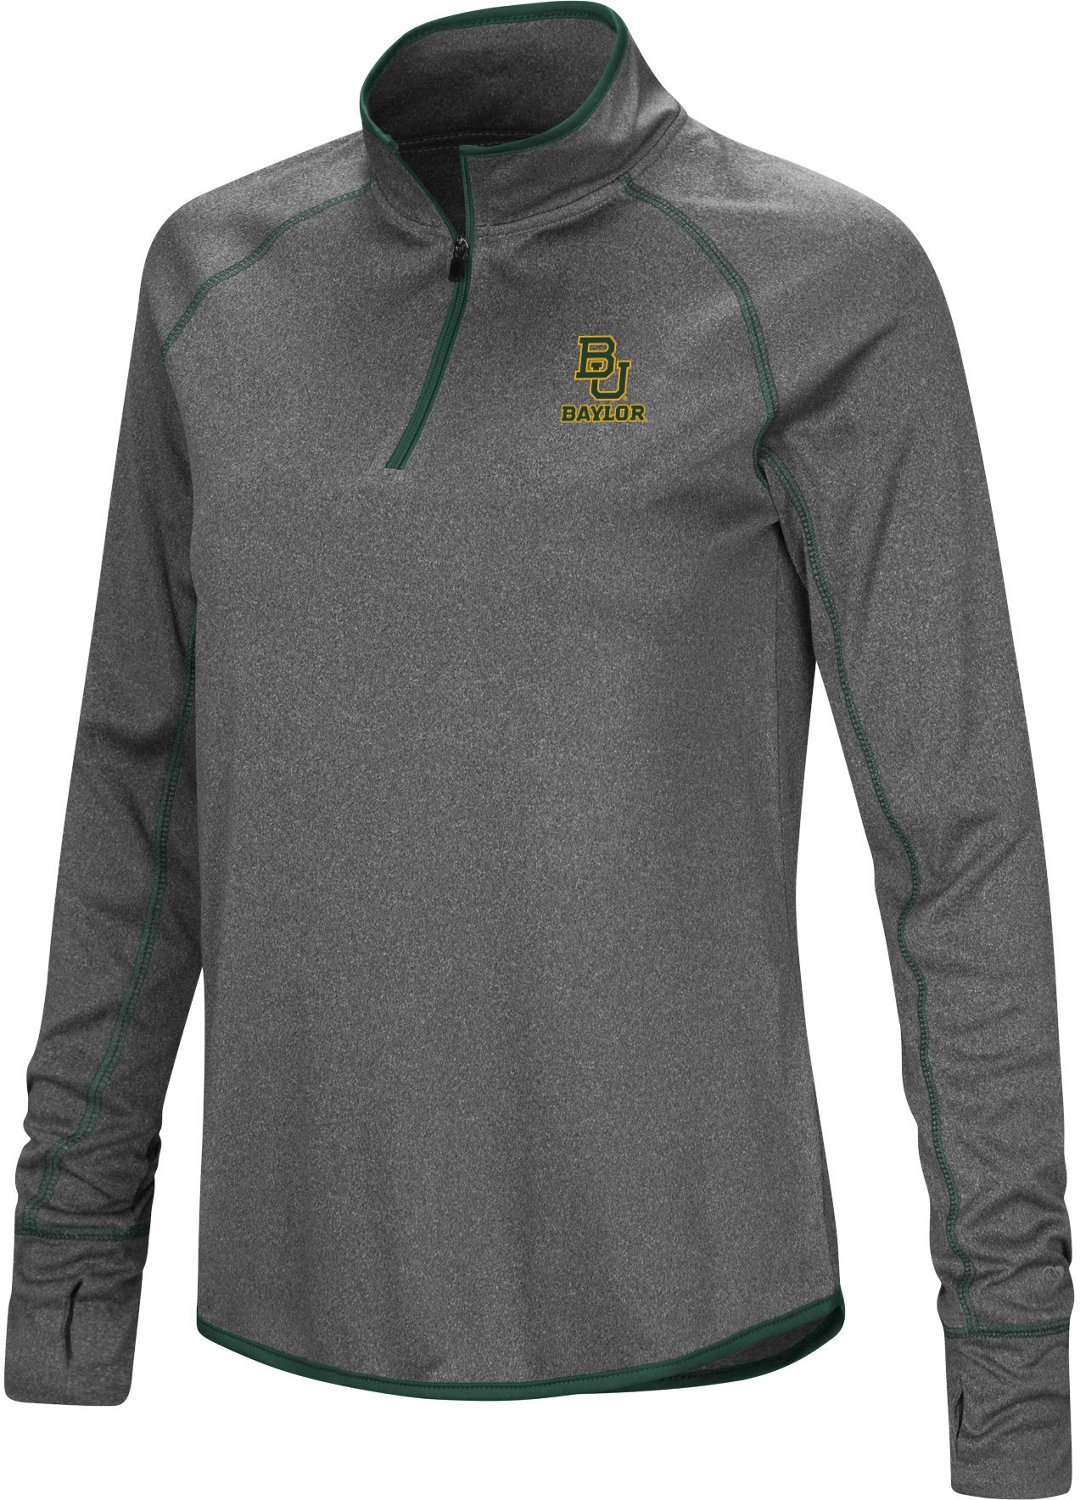 Colosseum Athletics Women's Baylor University Shark 1/4 Zip Windshirt